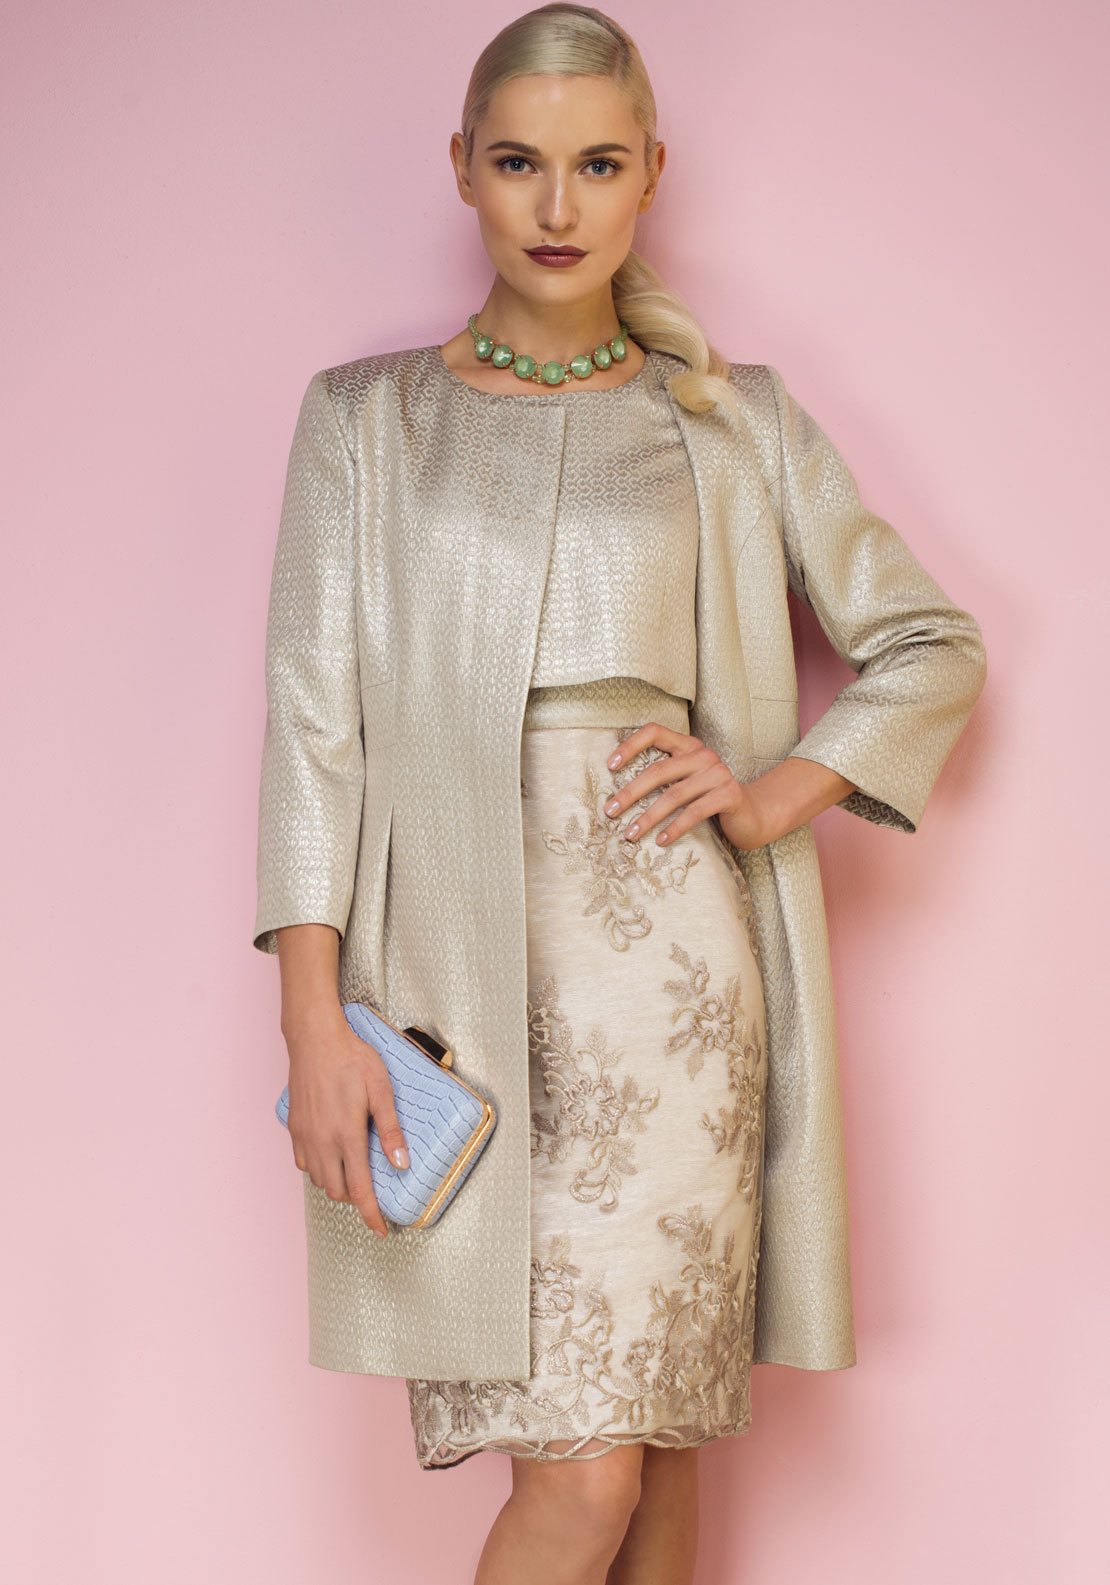 Aideen Bodkin Galax Lace Overlay Dress, Gold